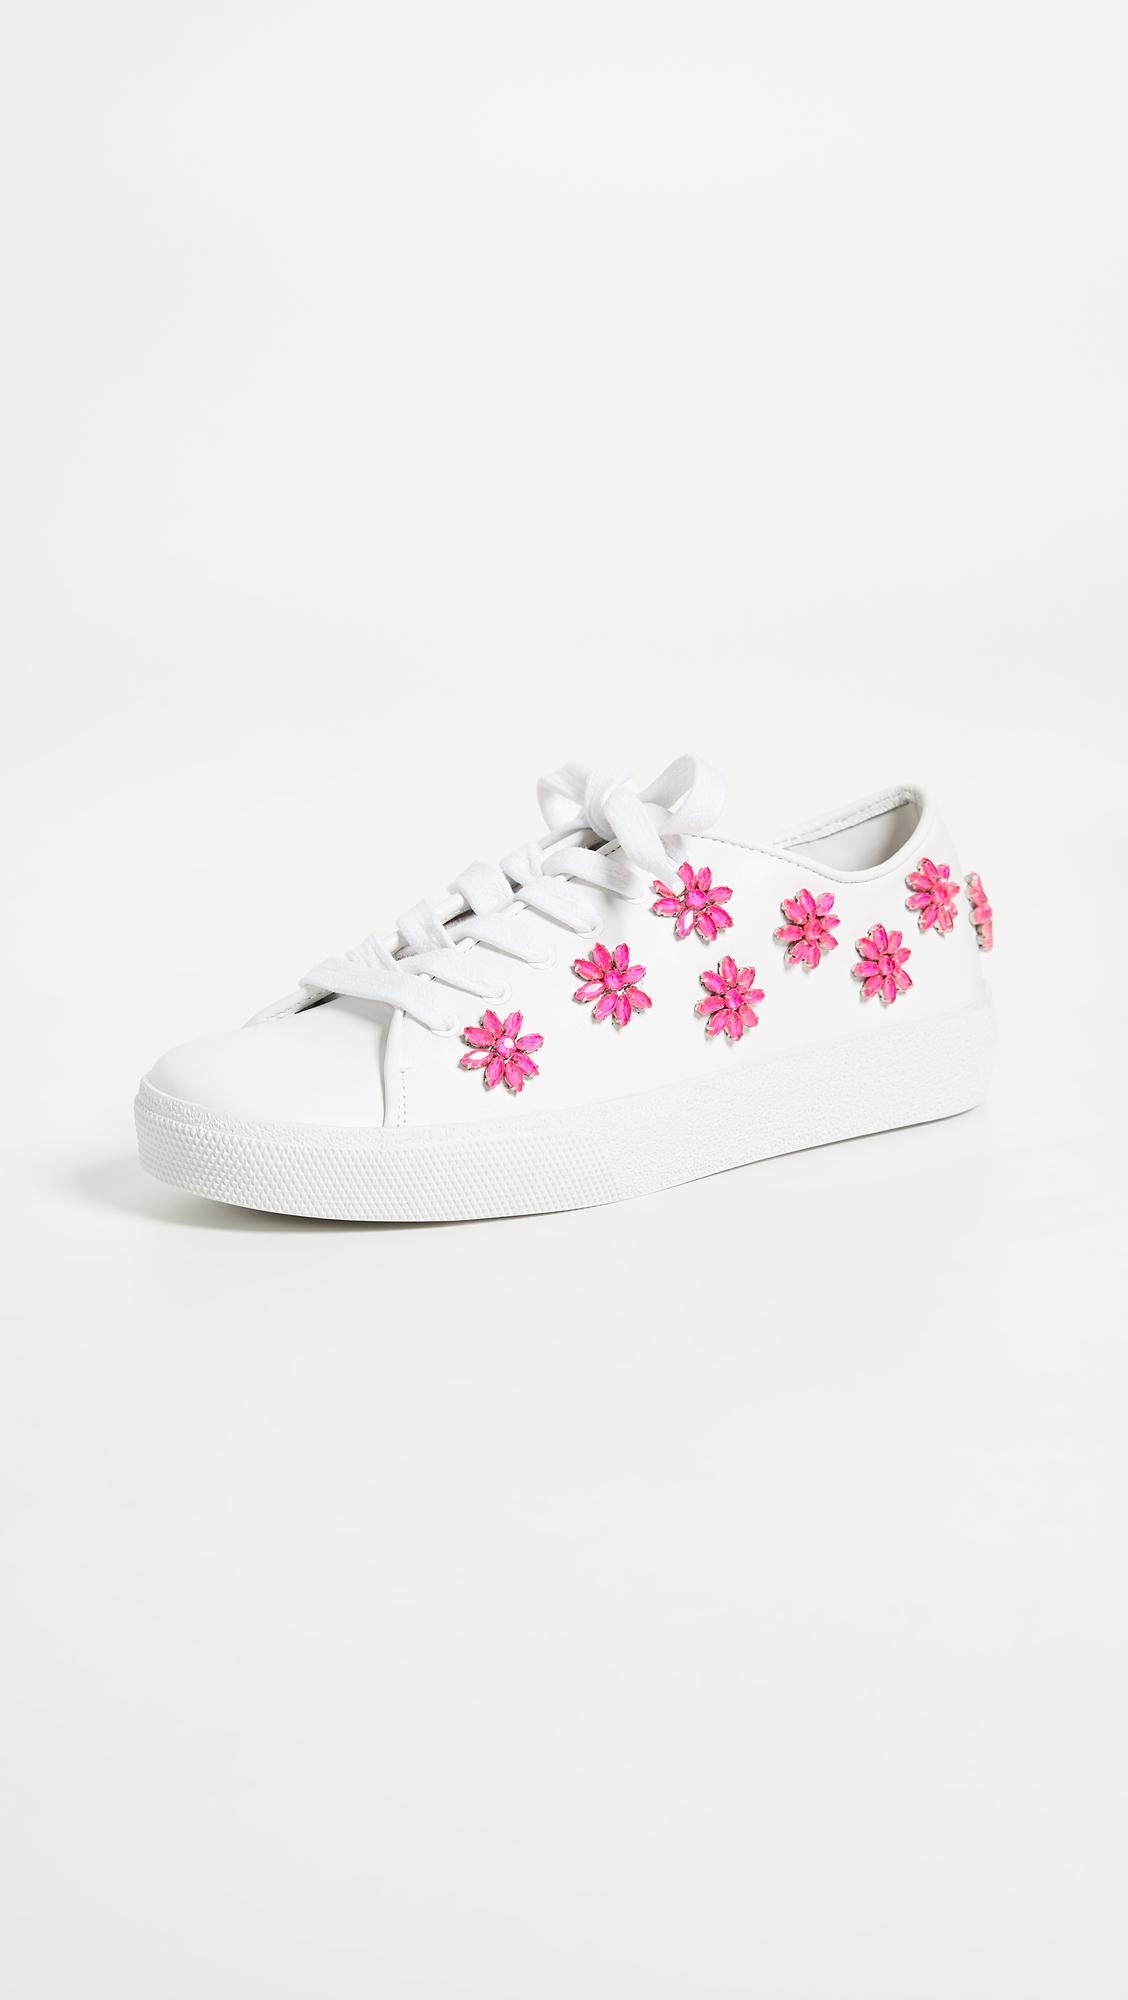 ALICE+OLIVIA Cleo Floral-Applique Leather Sneakers GyW1fgC1E